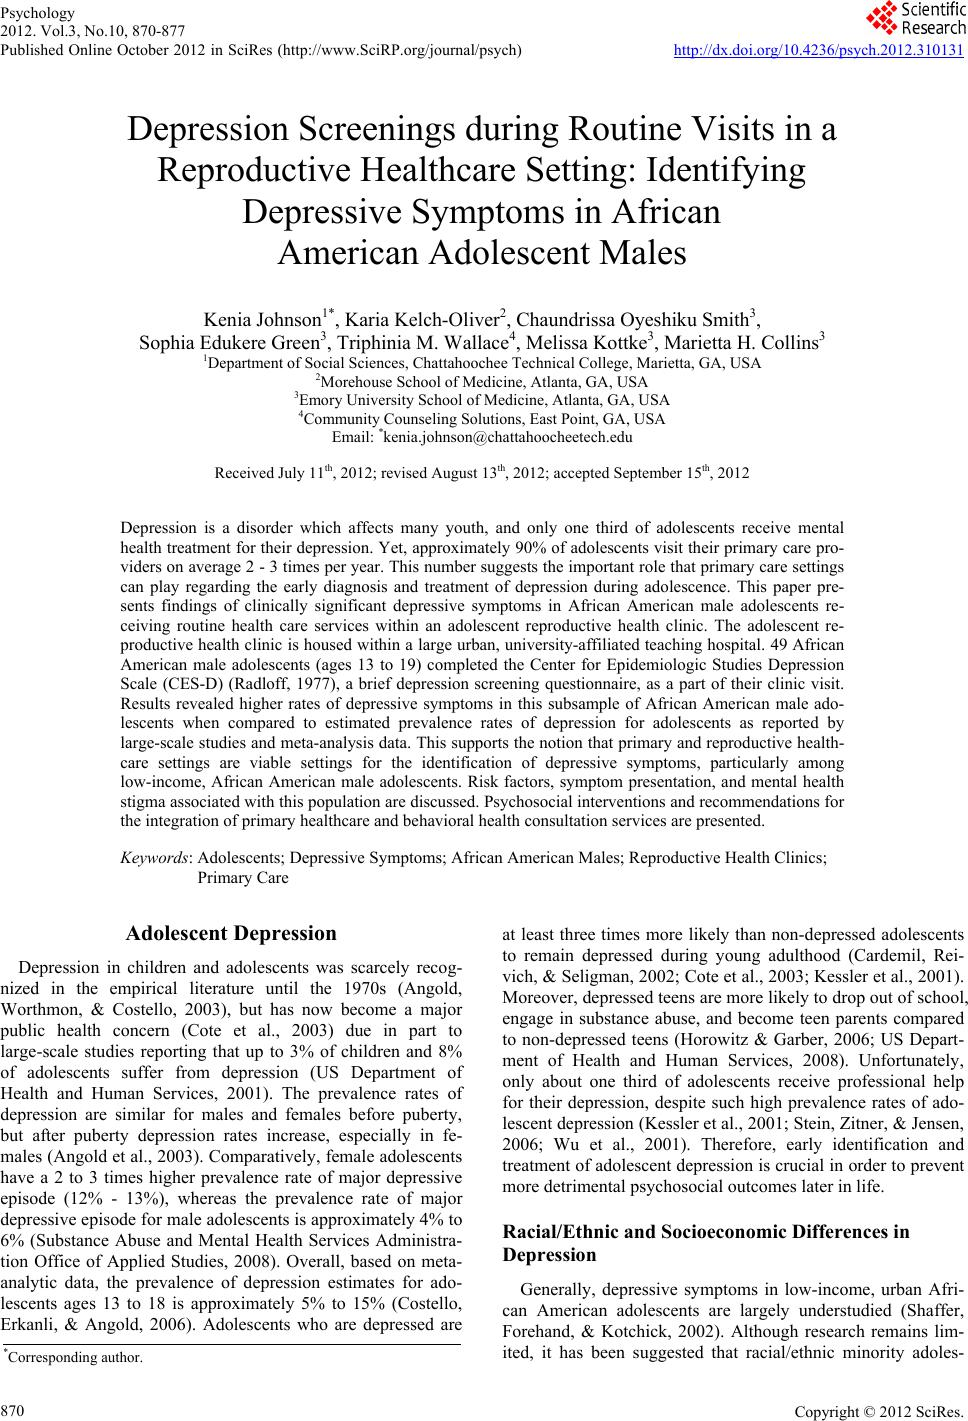 depression screenings during routine s in a reproductive depression screenings during routine s in a reproductive healthcare setting identifying depressive symptoms in african american adolescent males